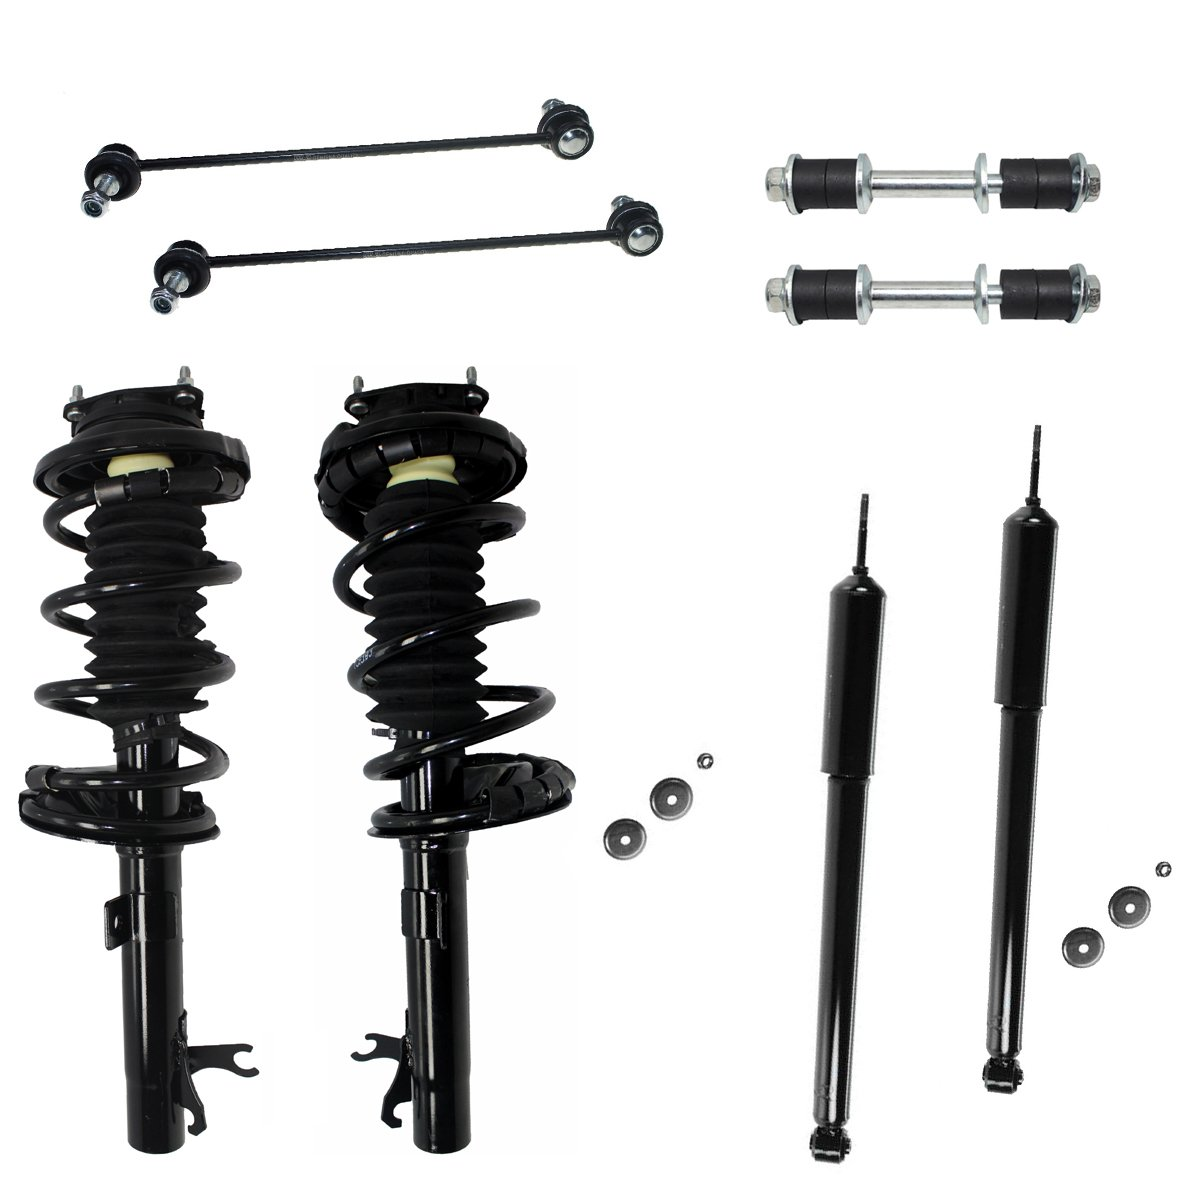 All (4) Complete Front Strut Assembly Set & Rear Shock Absorber Pair & All (4) Front & Rear Sway Bar Links - NOT FOR WAGON - [00-05 Ford Focus] Detroit Axle